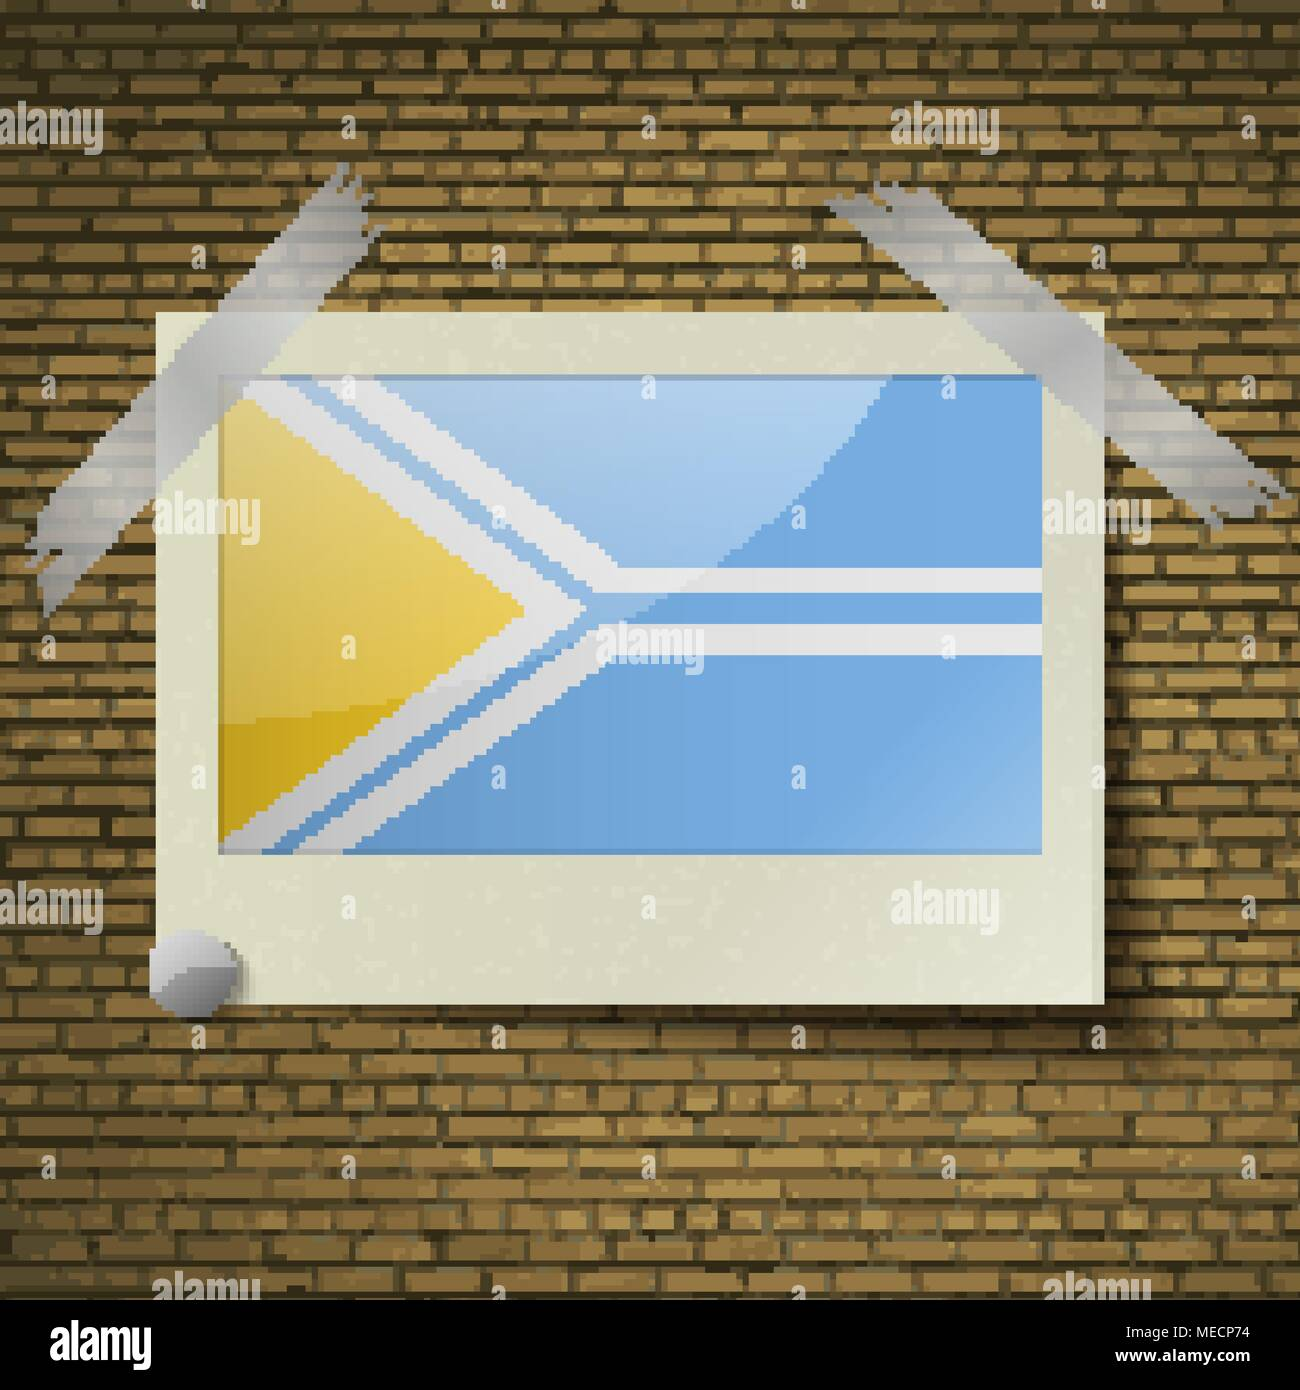 Flags of Tuva at frame on a brick background. Vector illustration - Stock Image